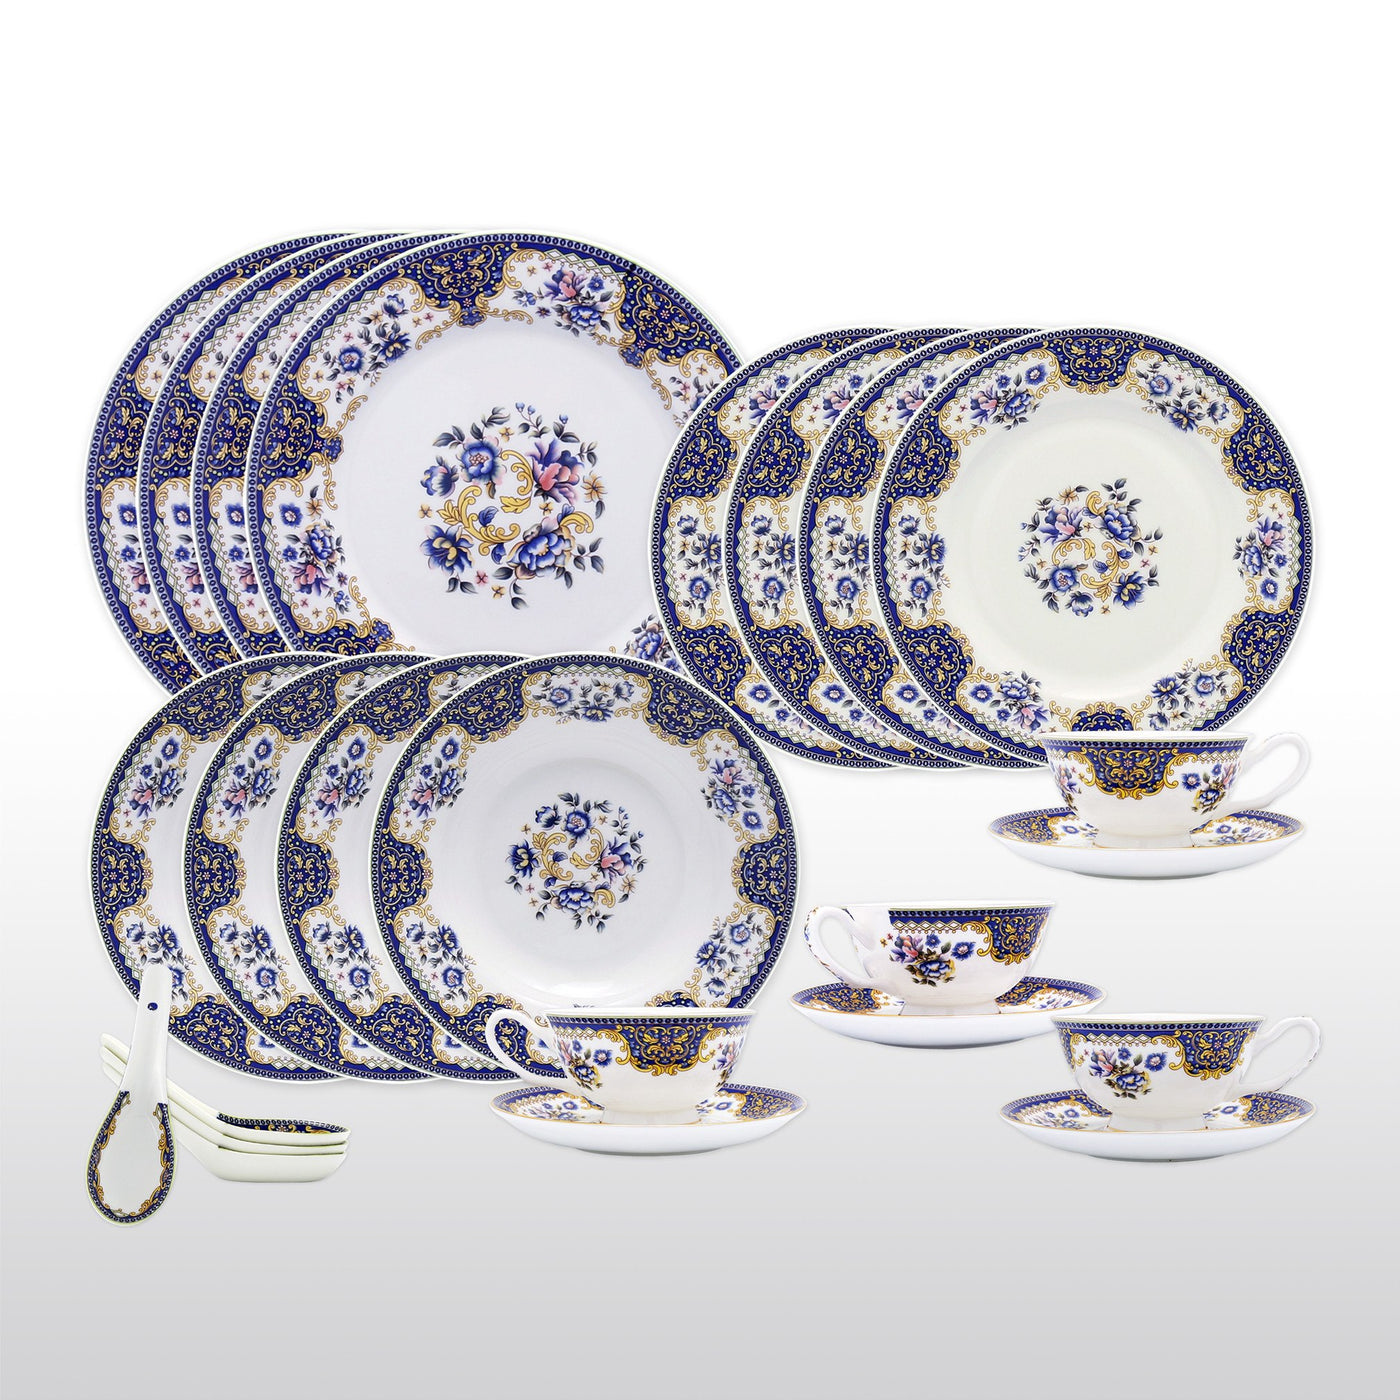 Dinnerwares - Bone China 24 Piece Dinnerware Set Floral Motif And Blue Patterns Service For ...  sc 1 st  Homenique.net & Fine Bone China Dinnerware Set - 24 Piece Service for 4 - Blue ...